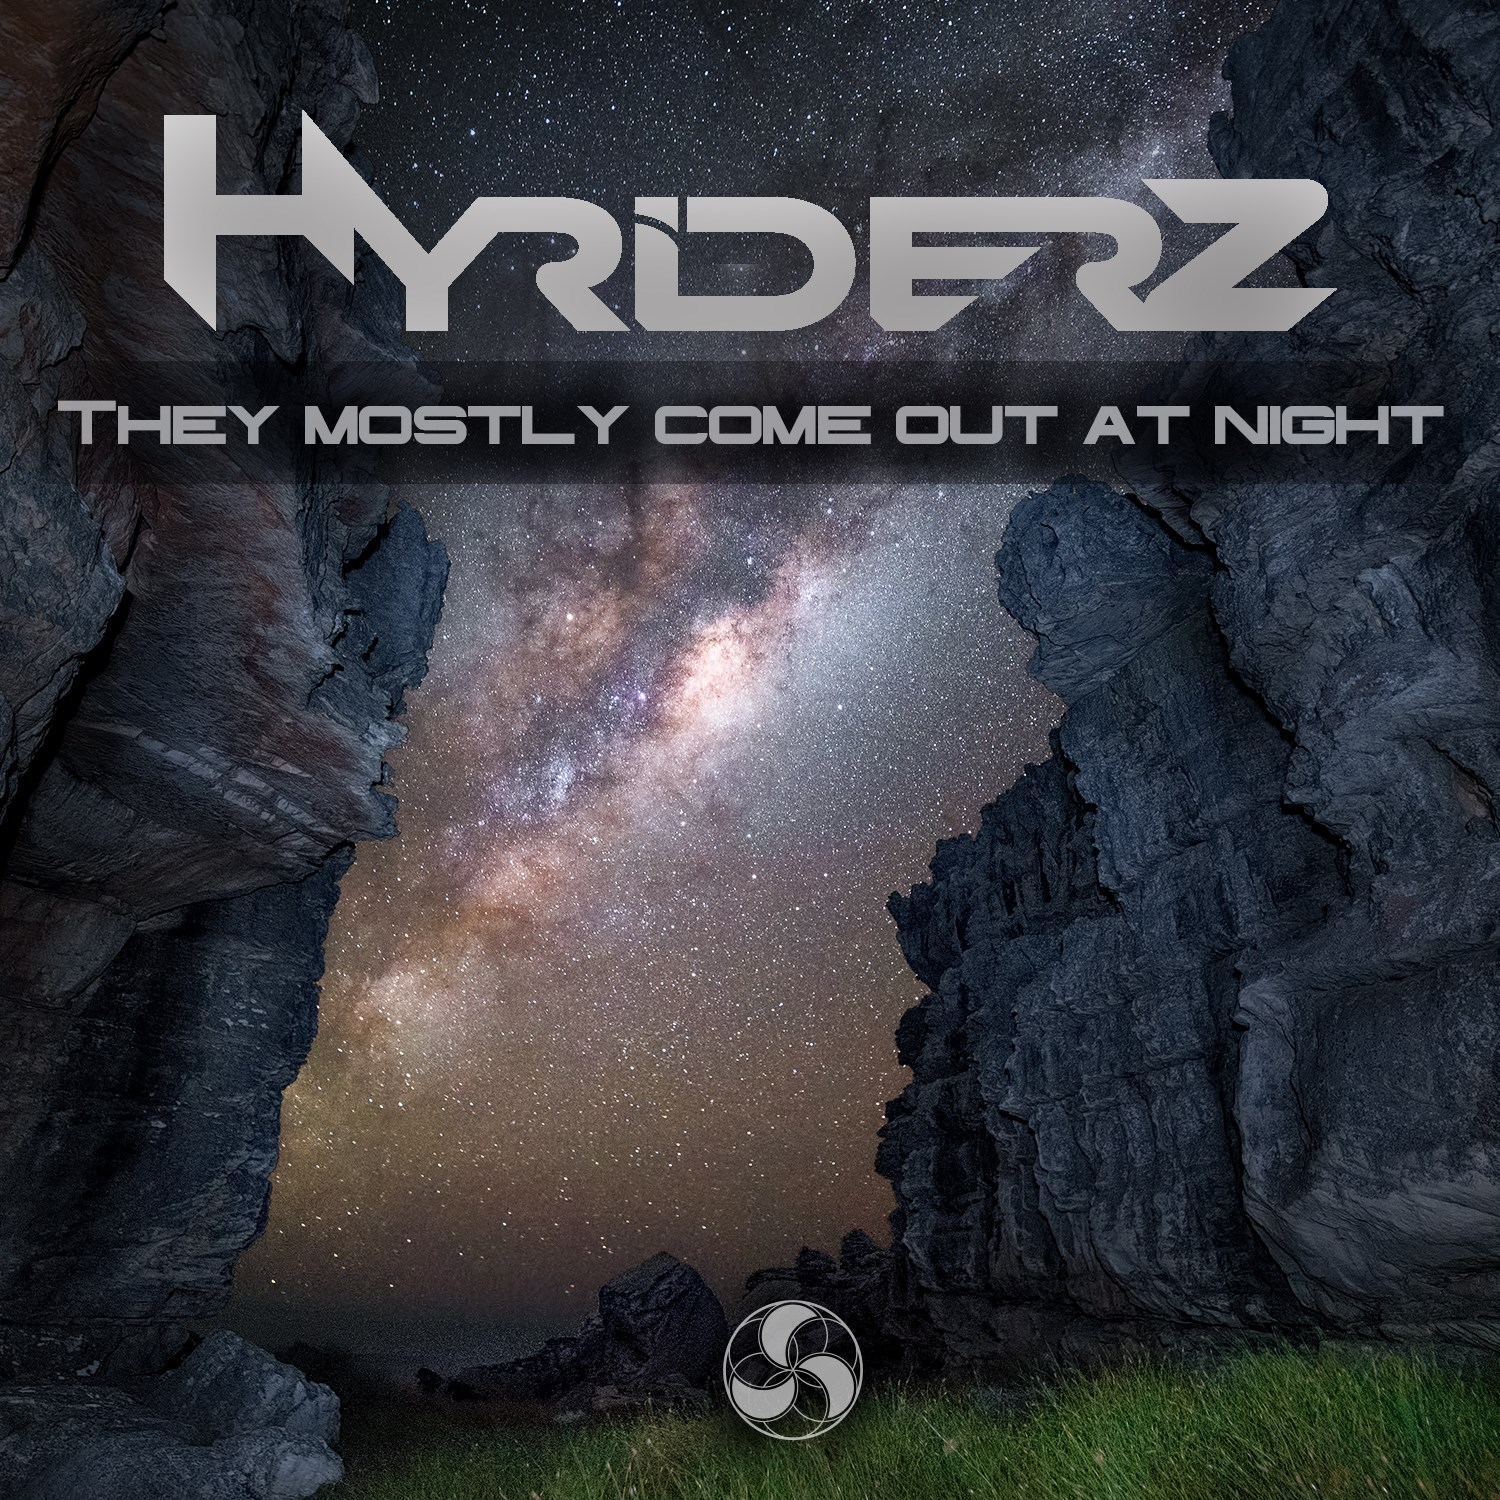 Hyriderz - They mostly come out at Night